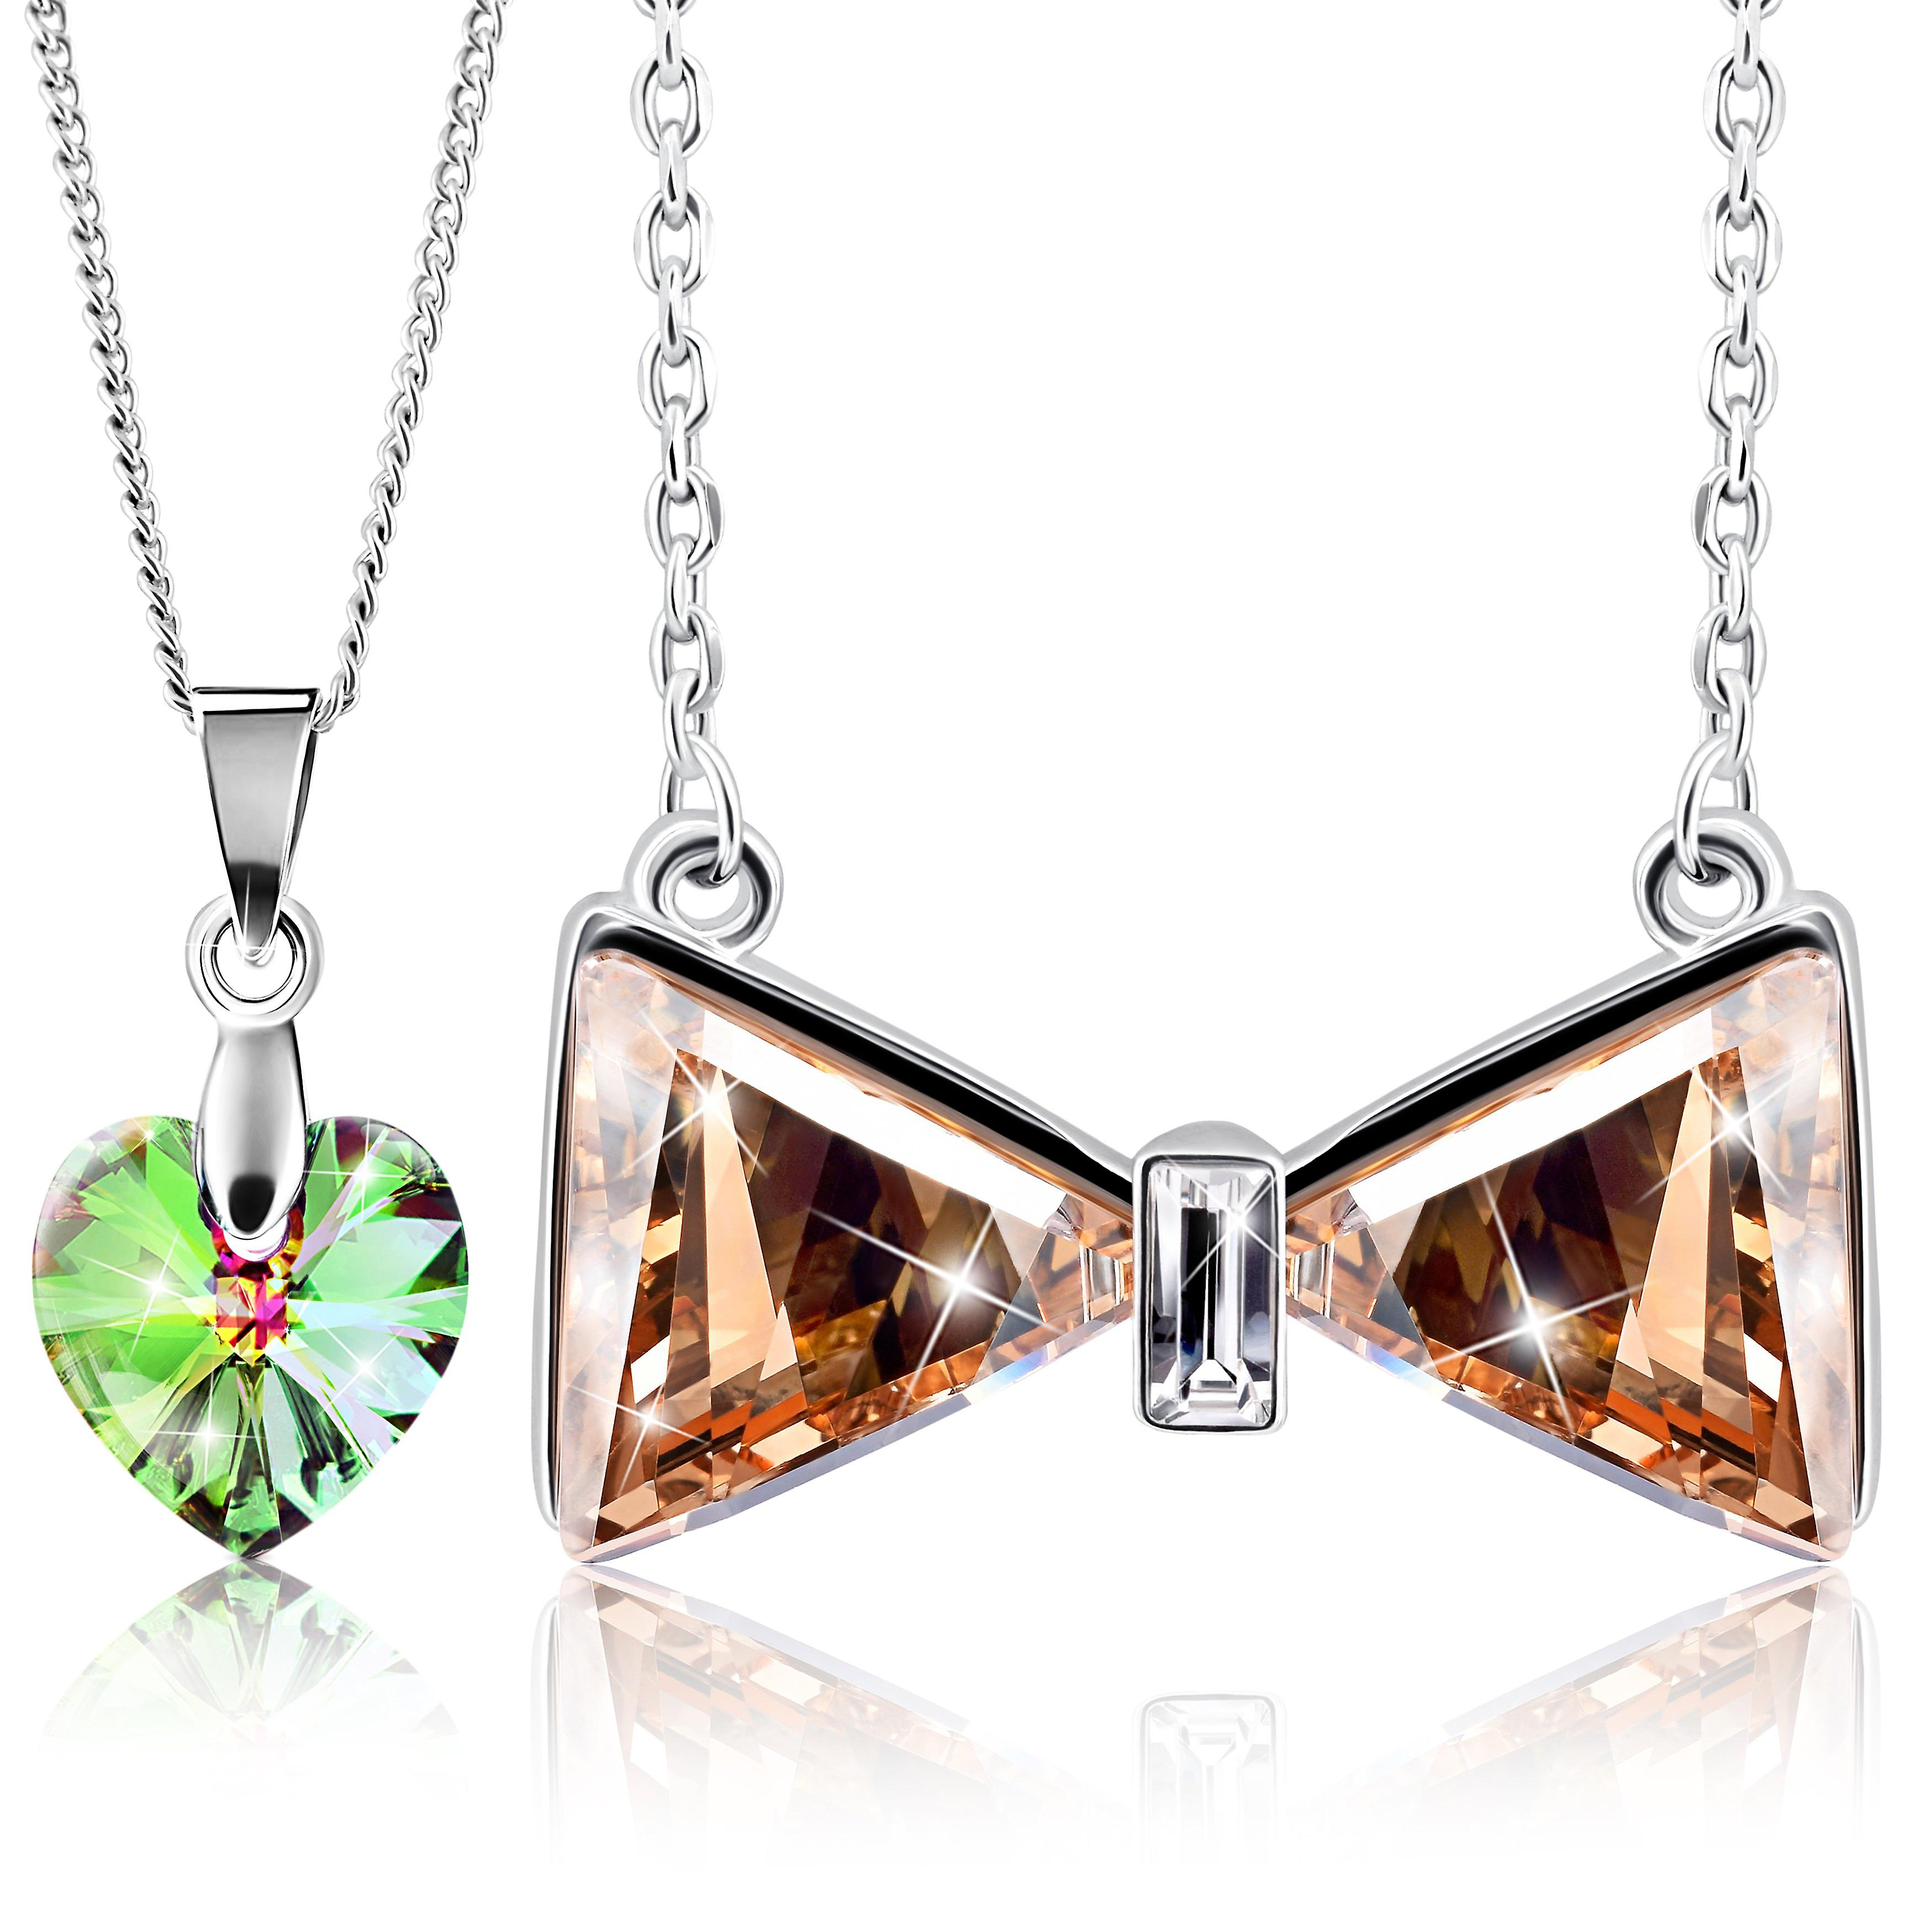 Rhodium plated necklaces with swarovski crystal. pendant necklace. by 2splendid. 2 for 1. gift box included. nnqz021